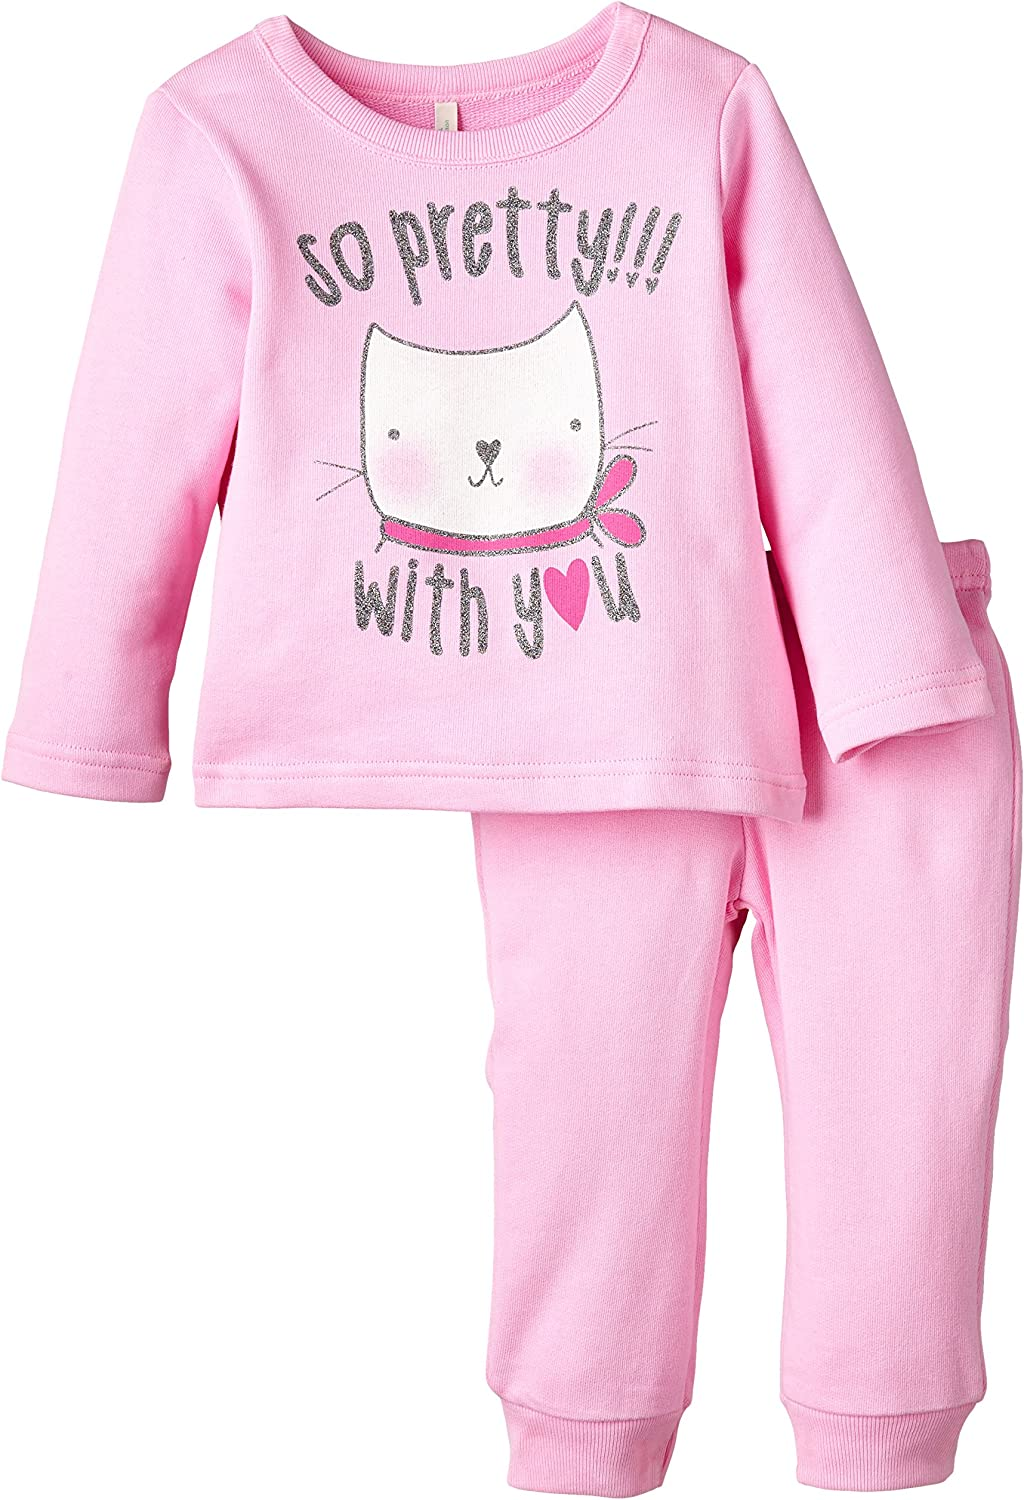 United Colors of Benetton 3J67Z12DP Bunny Tracksuit, Chándal para ...